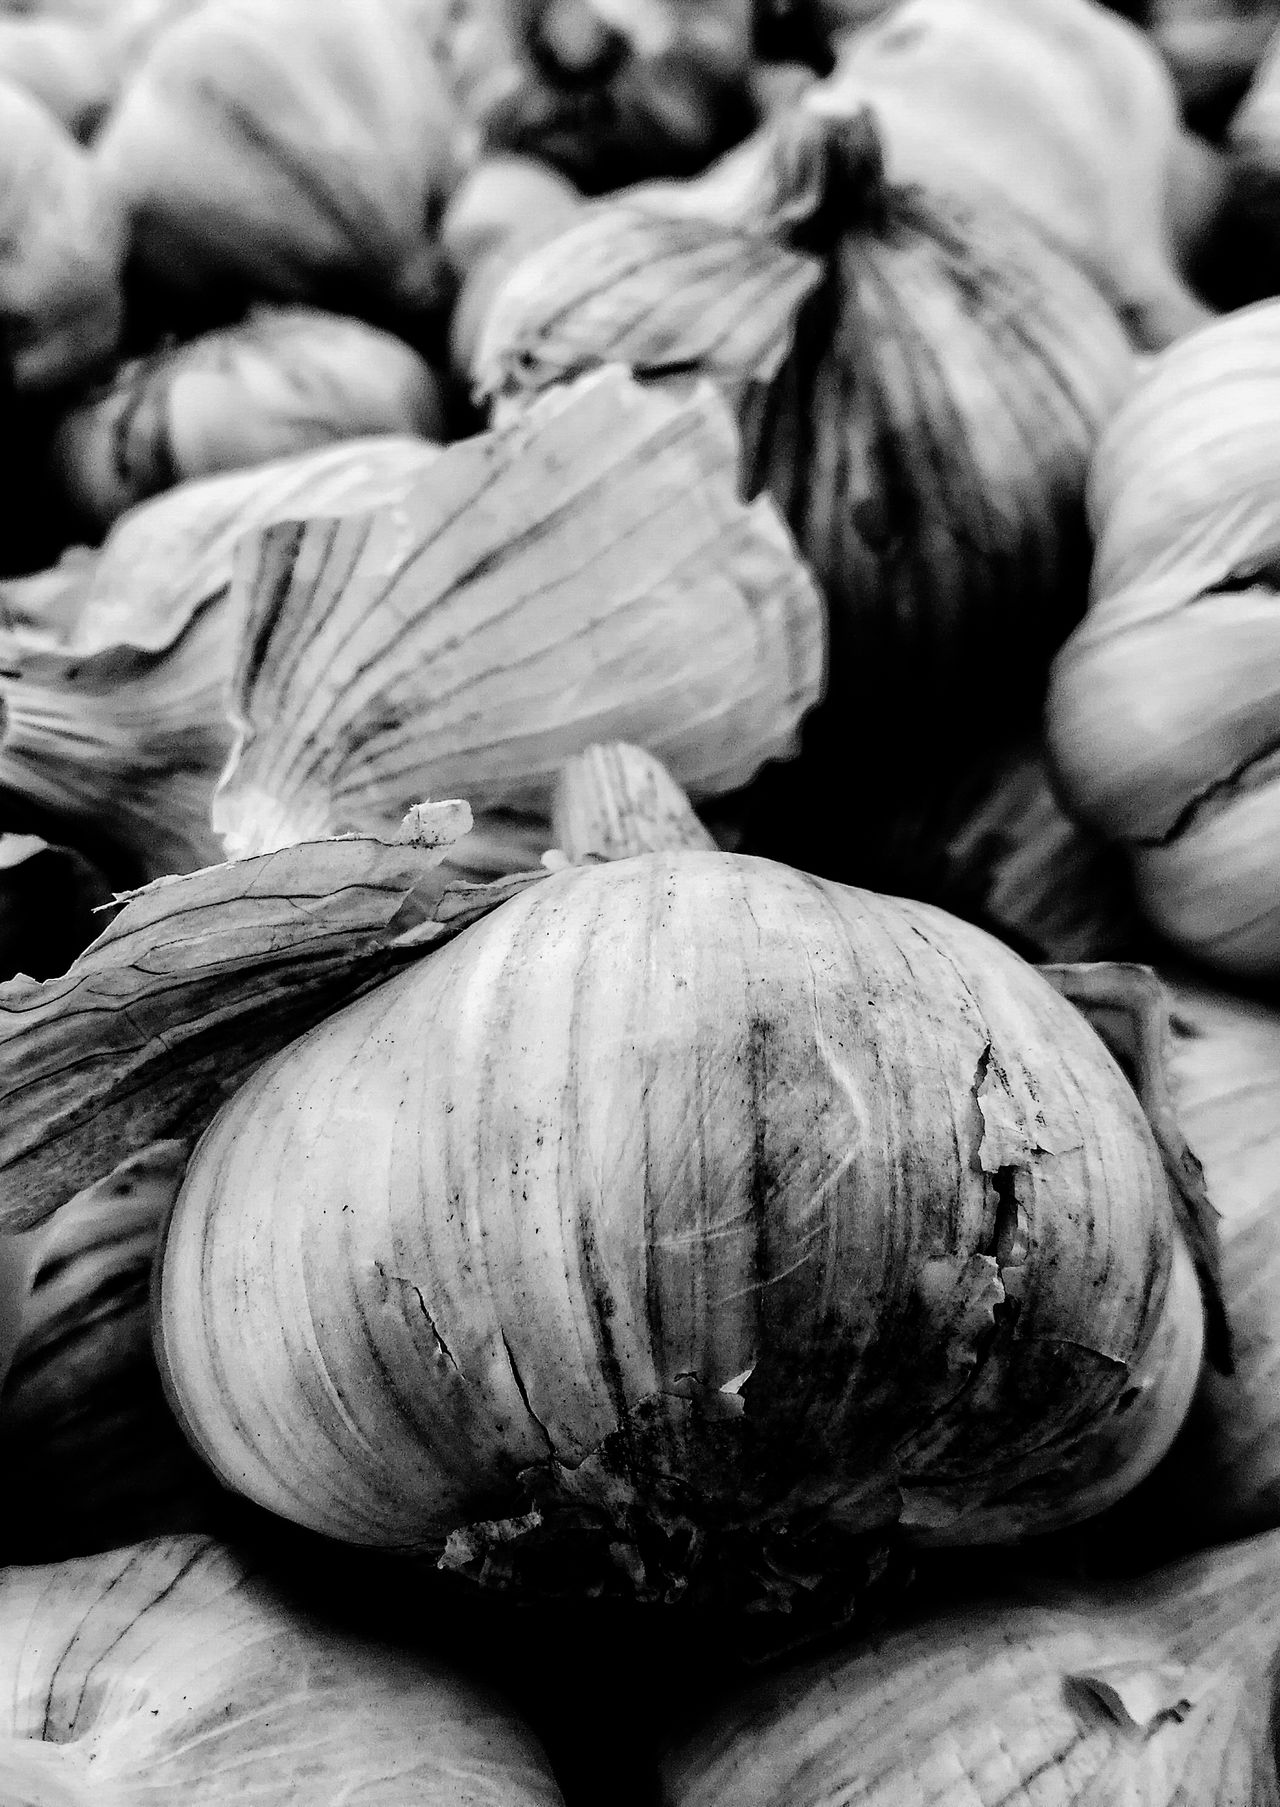 Backgrounds Food And Drink Welcome To Black Focus On Foreground Garlic Garlic Bulb Garlic Clove Black & White